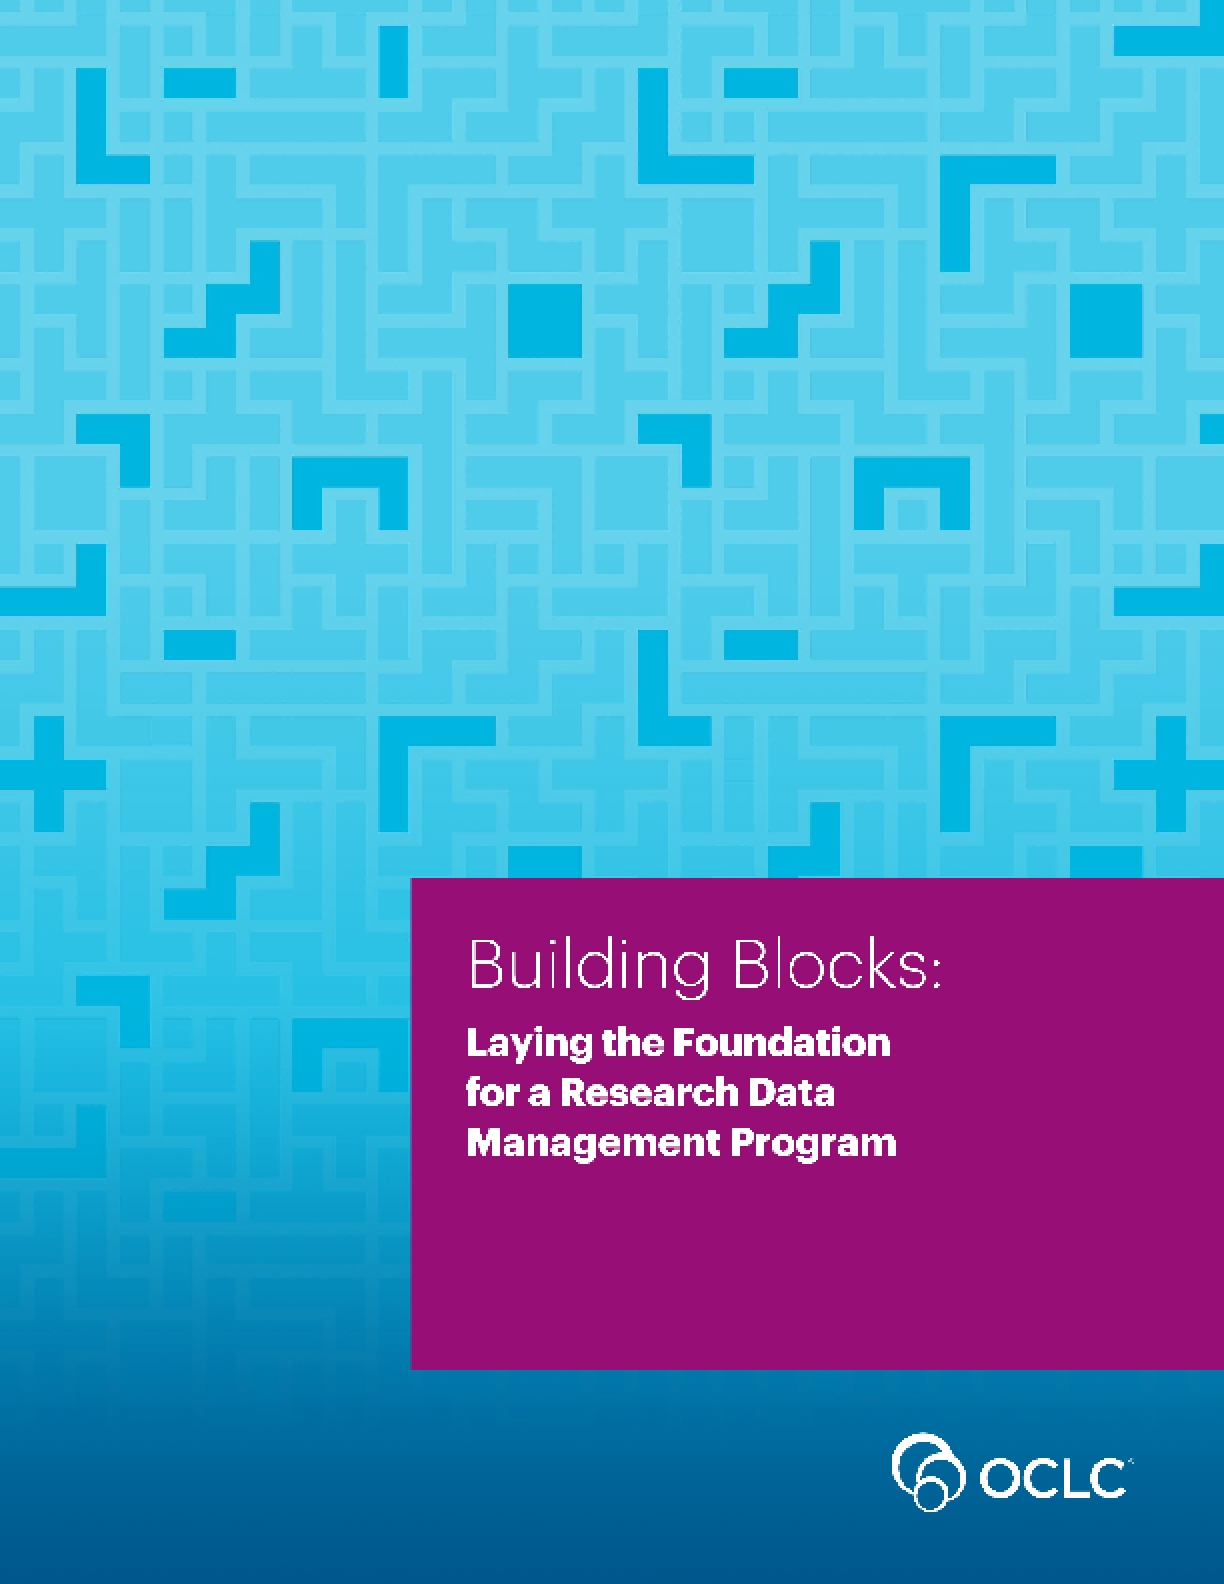 Building Blocks: Laying the Foundation for a Research Data Management Program